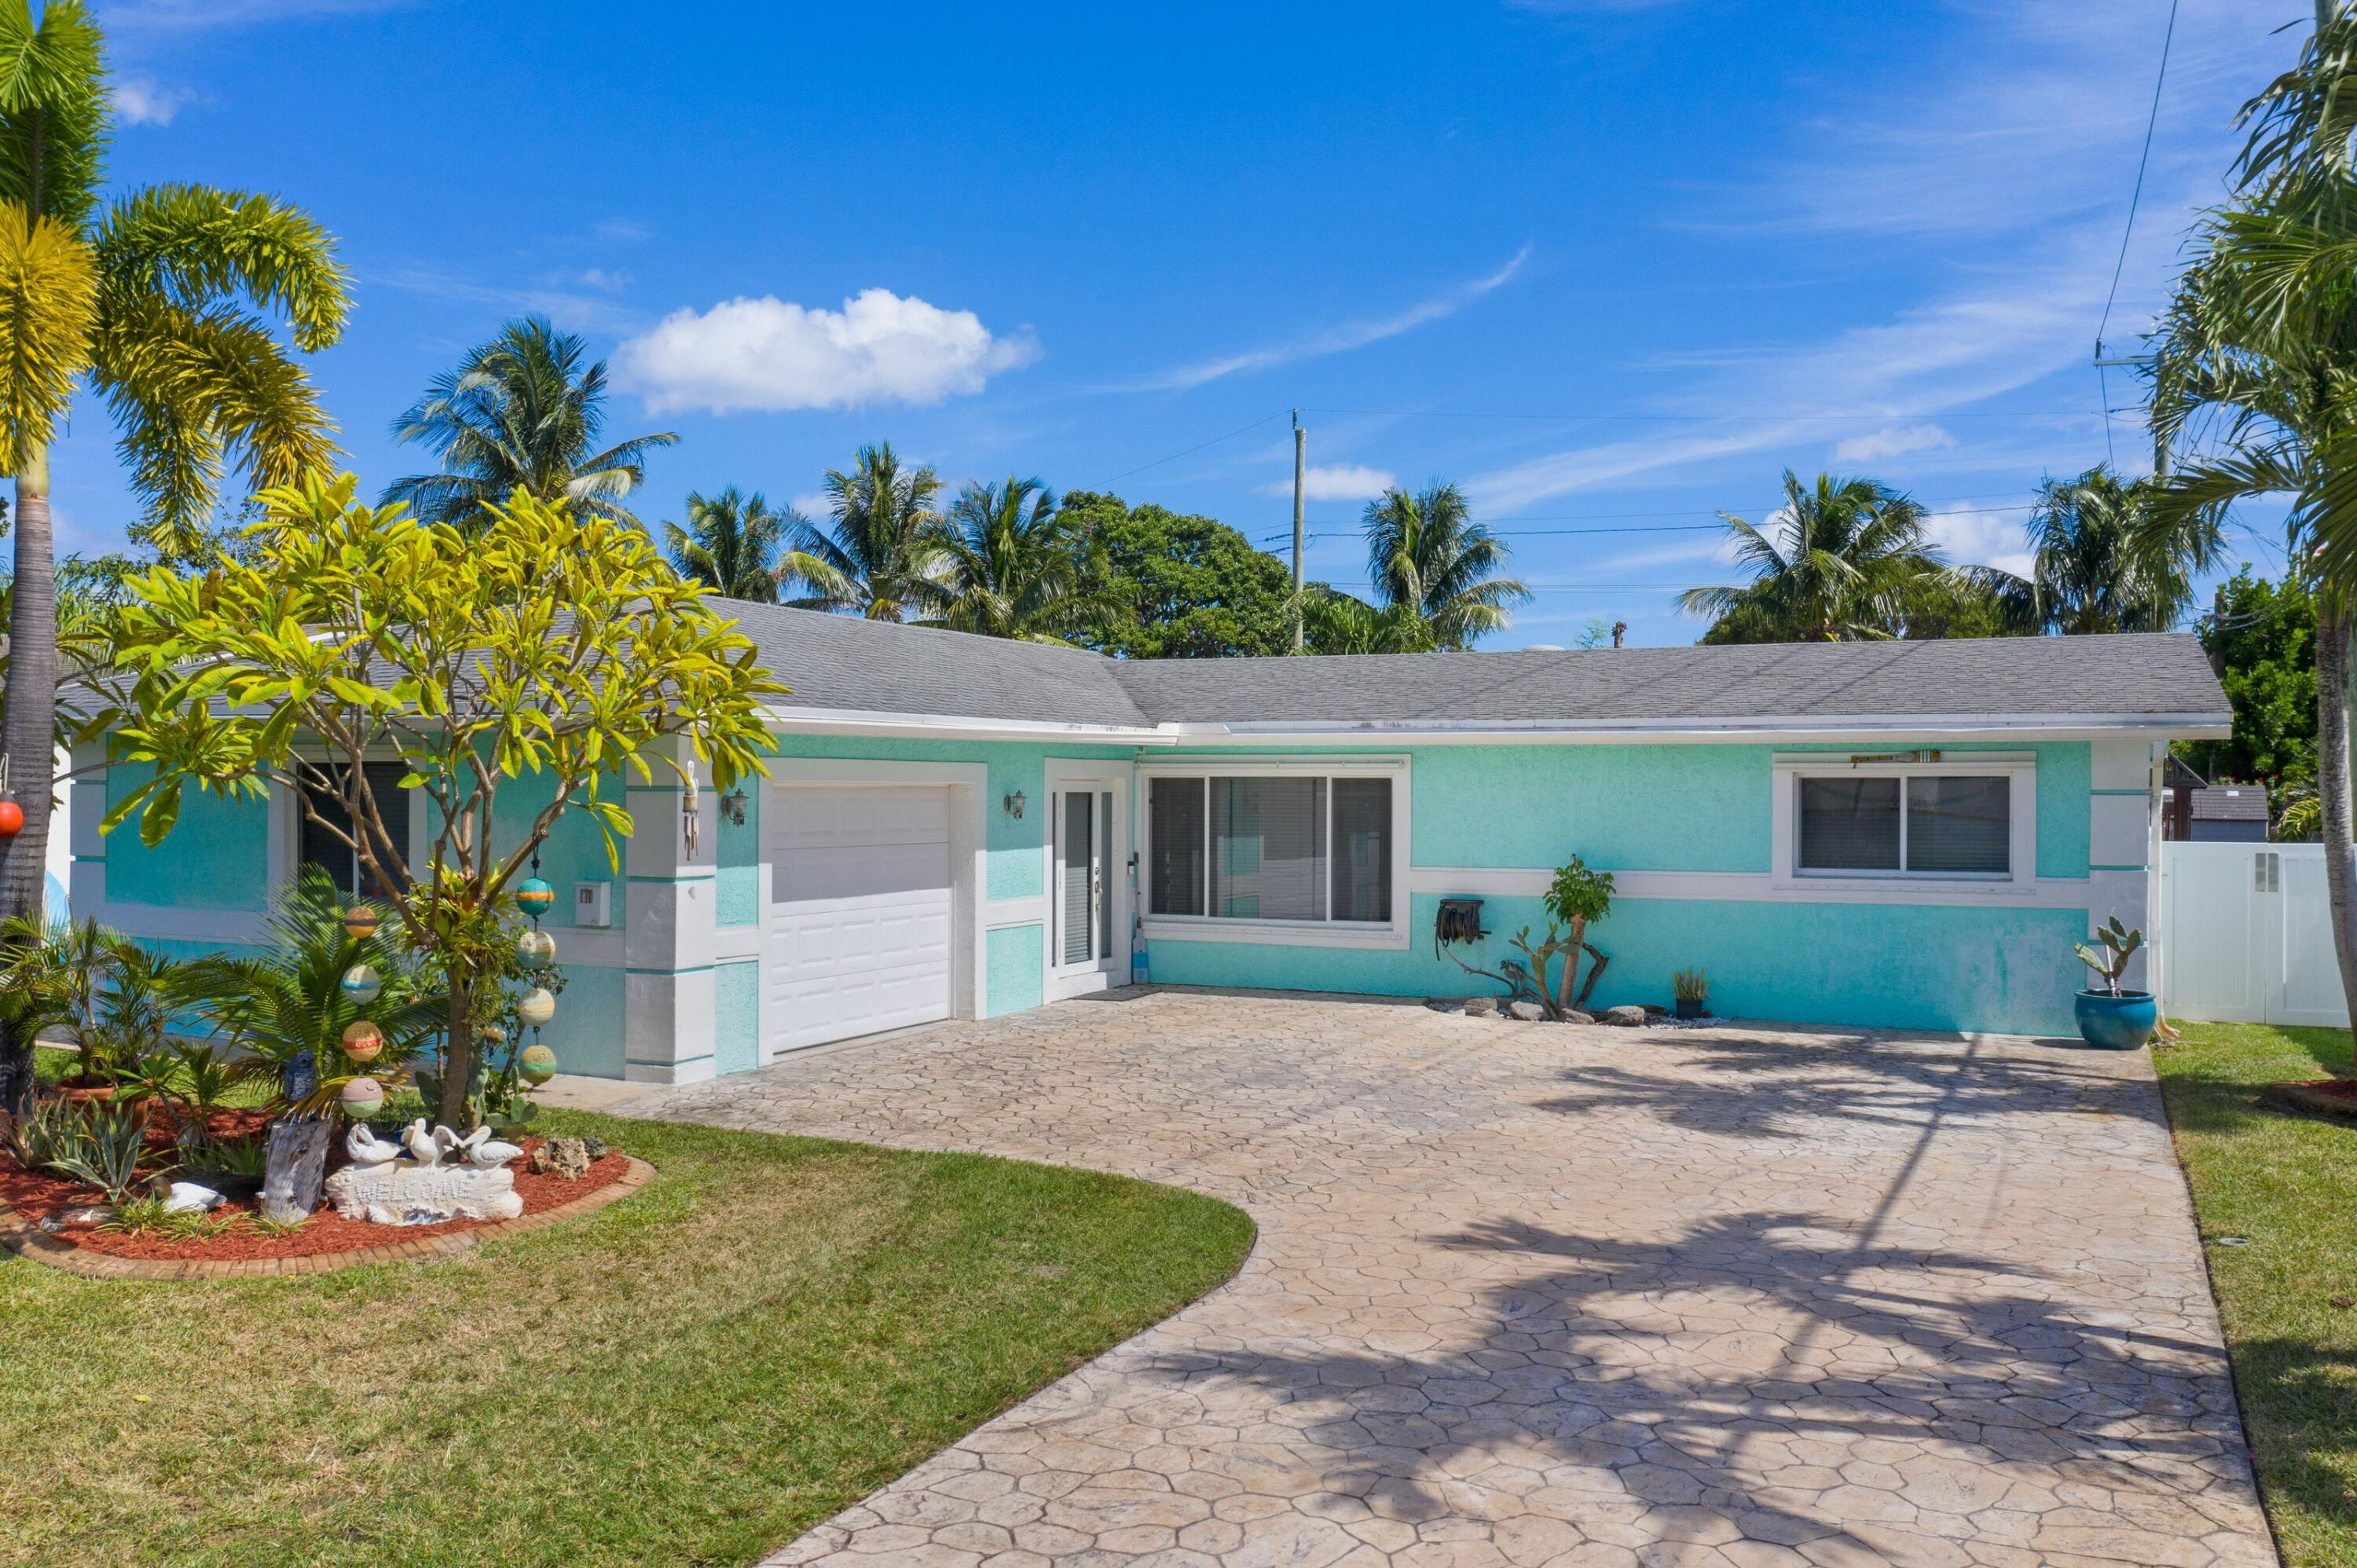 ***Paradise Found***  In Historic East Deerfield Bch, 1 Mile to the ocean in a family-friendly neighborhood with close proximity to parks and boat ramps. Charming 3 bedroom, 2 bathroom, 1 car garage home on an oversized lot. The backyard is a private oasis, fully fenced with plenty of room for a pool. Home is equipped with hurricane shutters, 100 gallon propane house generator (will run the whole house, just filled and serviced), NEW water heater in master, water heater for main house (2018), AC was put in 2015 with a 10 year warranty. Tile floors in main living areas, laminate in bedrooms, granite counter tops in kitchen and stainless steel appliances (2019). Beautiful crown molding throughout. NO popcorn ceiling, NO carpet, and NO HOA! Minutes to I-95.This will NOT last!!